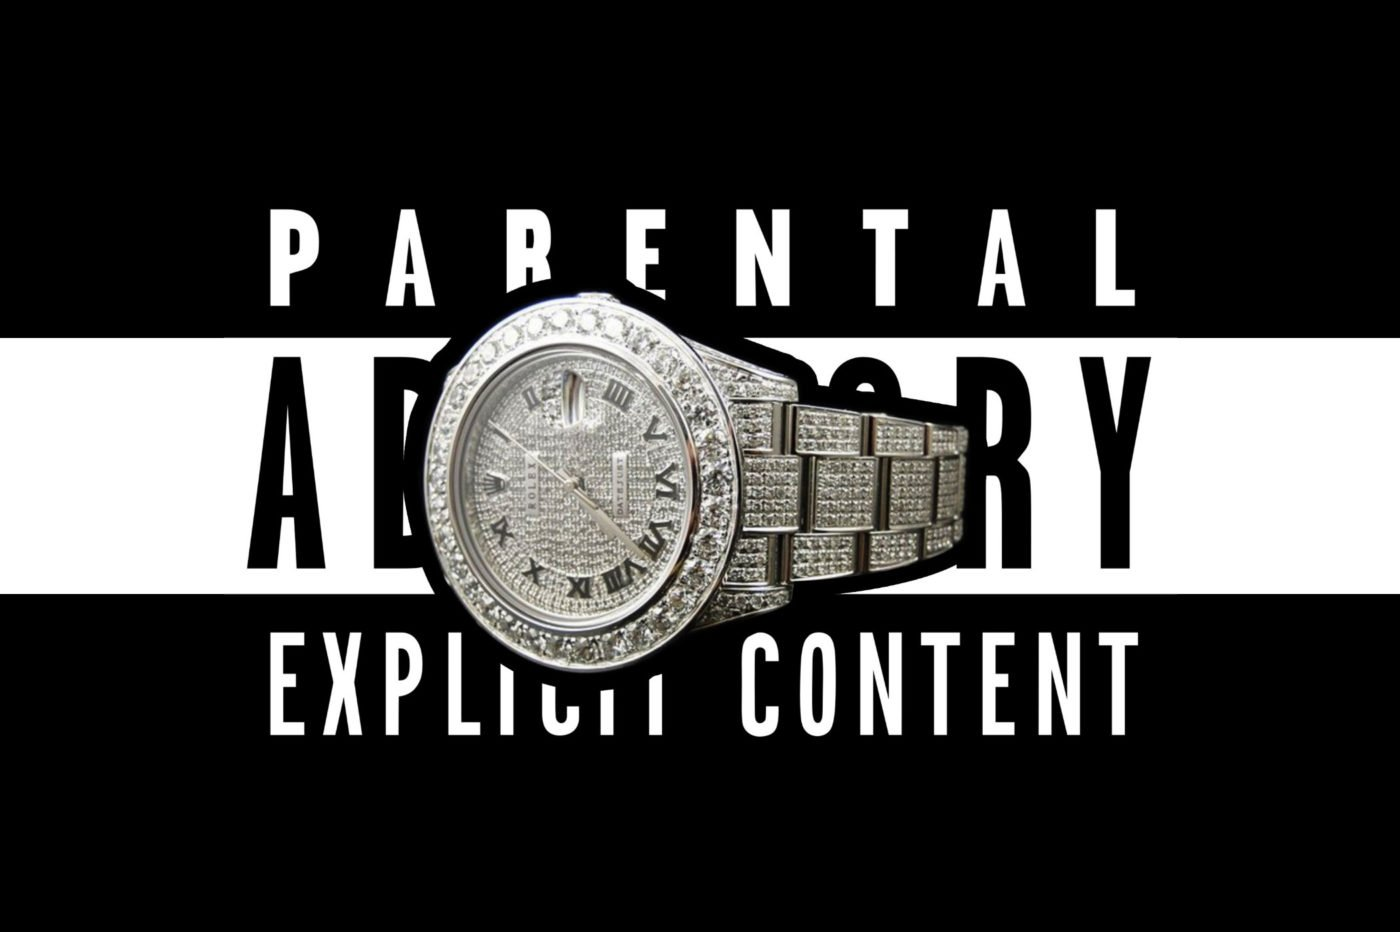 Timebloid 6 watches that are perfect for starting a successful career in gangsta rap.